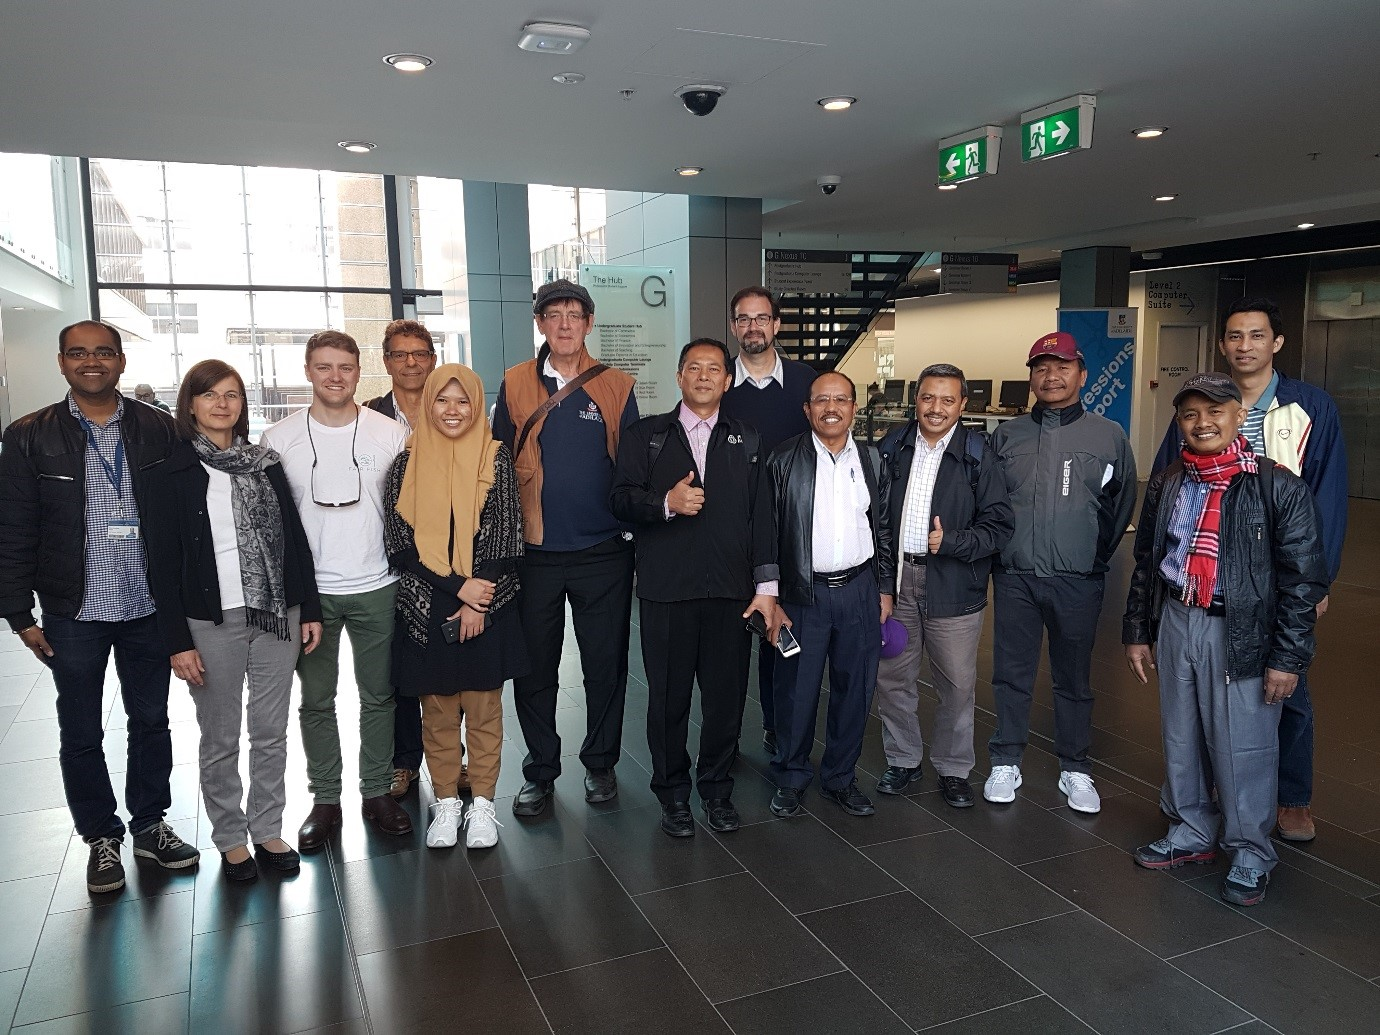 The group comprising Prof. Monika Hartmann and Dr. Johannes Simons from University of Bonn, Mr Tom Cosentino, delegates from Aceh and GFAR hosts Dr. Adam Loch and Mr. Rohan Yargop.